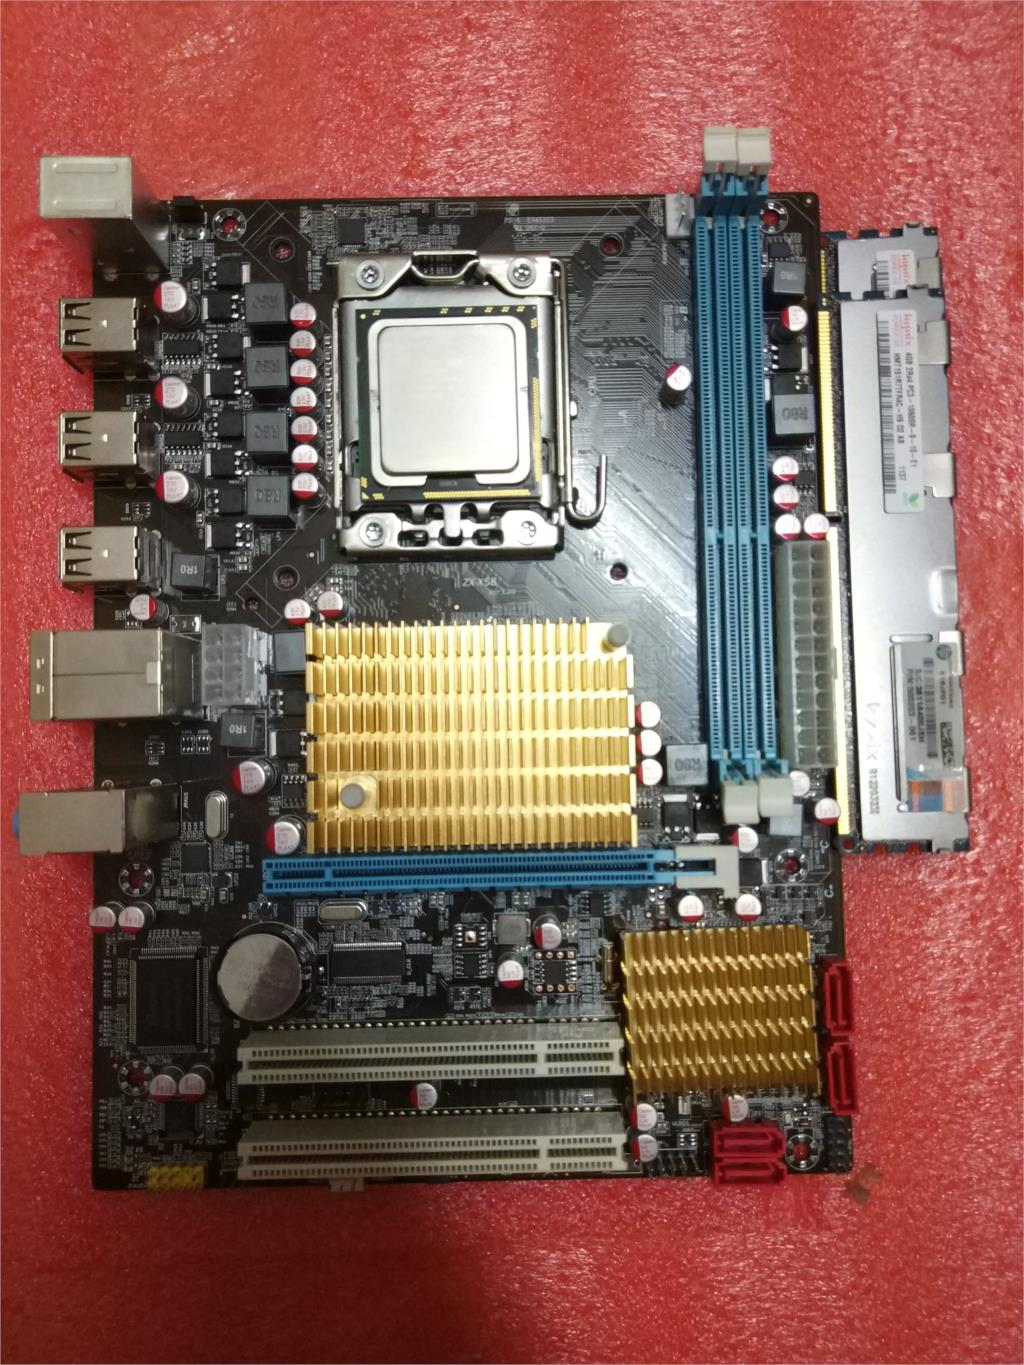 HUANAN X58 motherboard support DDR3 ECC REG Micro-ATX for X5570 X5650 W5590 X5670 L5520,only motherboard new original motherboard x58 extreme boards lga 1366 ddr3 24gb atx mainboard for x5570 x5650 w5590 x5670 l5520 cpu free shipping